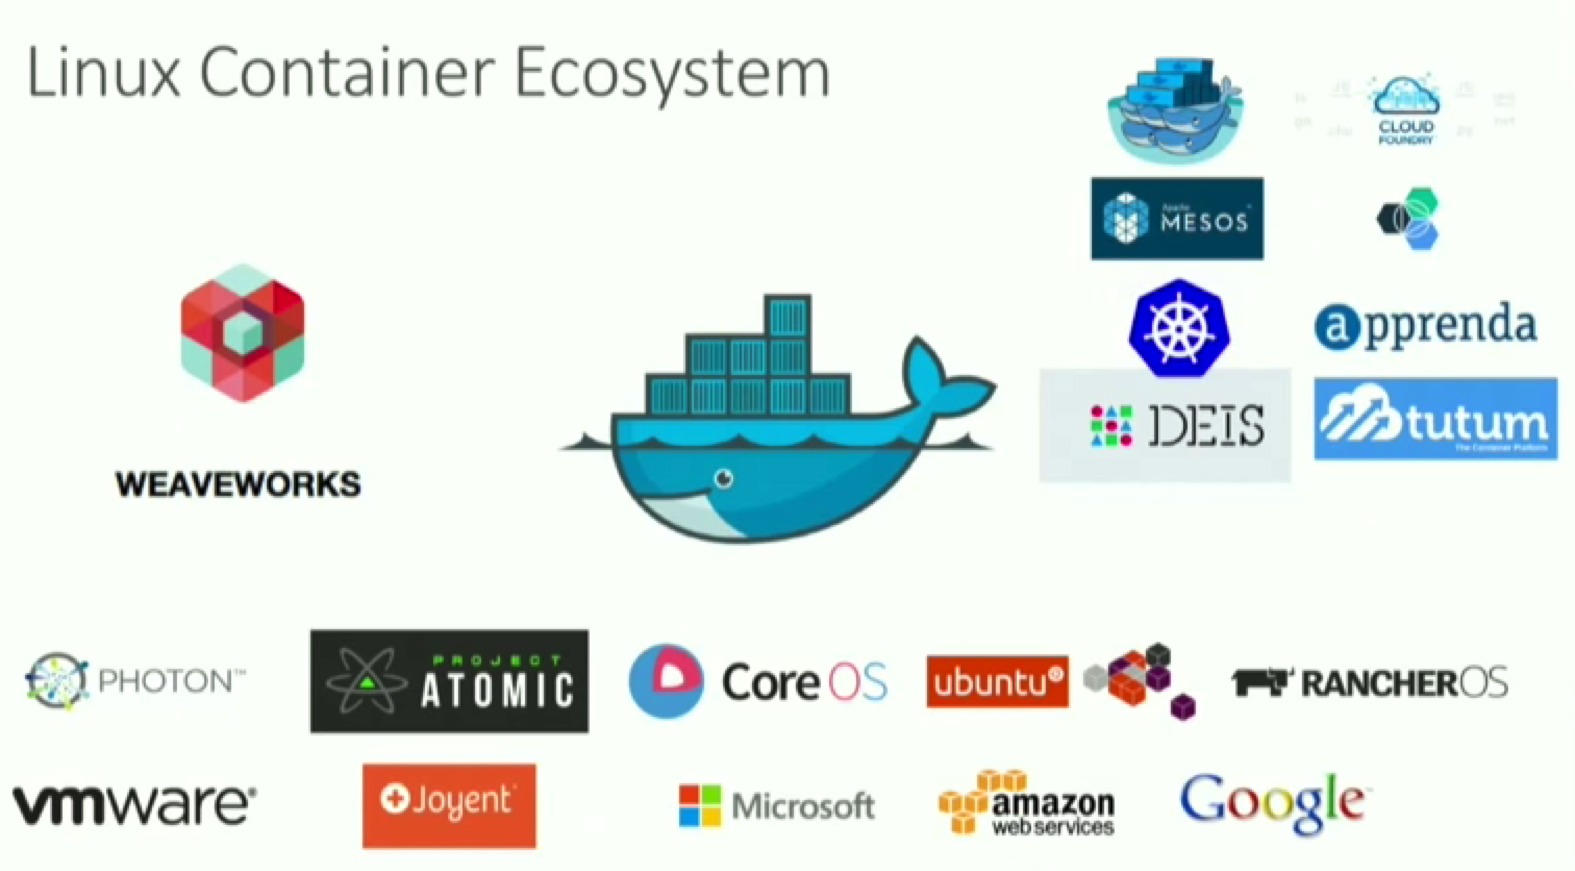 The Linux Cloud Container Ecosystem